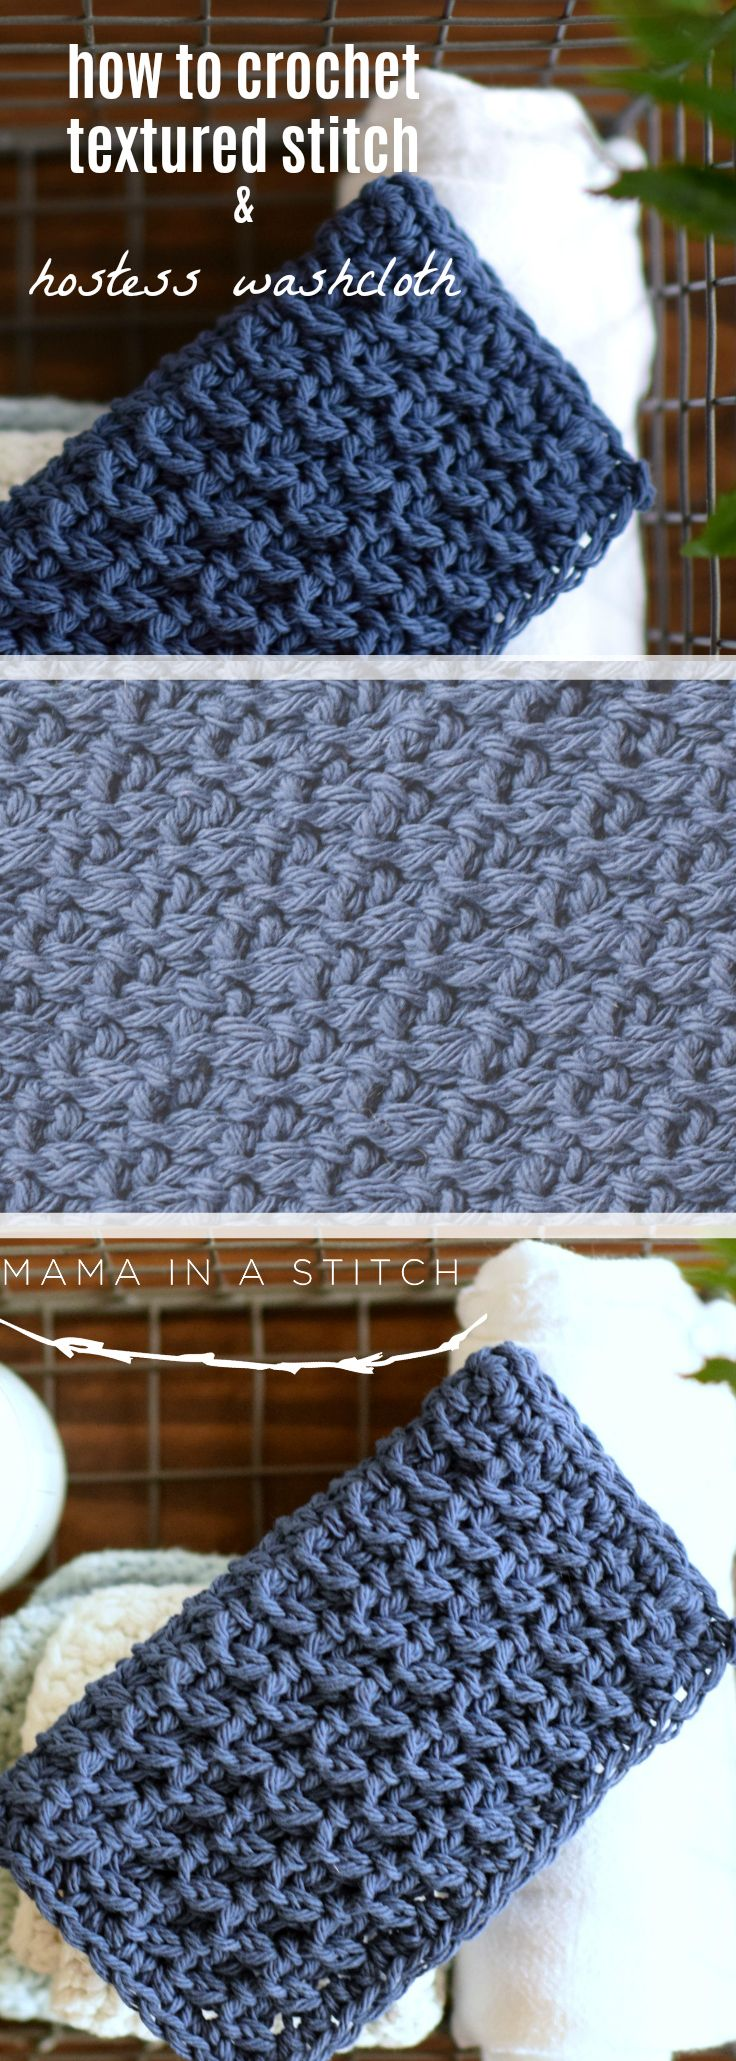 How To Crochet Textured Stitch & Hostess Washcloth via @MamaInAStitch #free pattern #diy #crafts